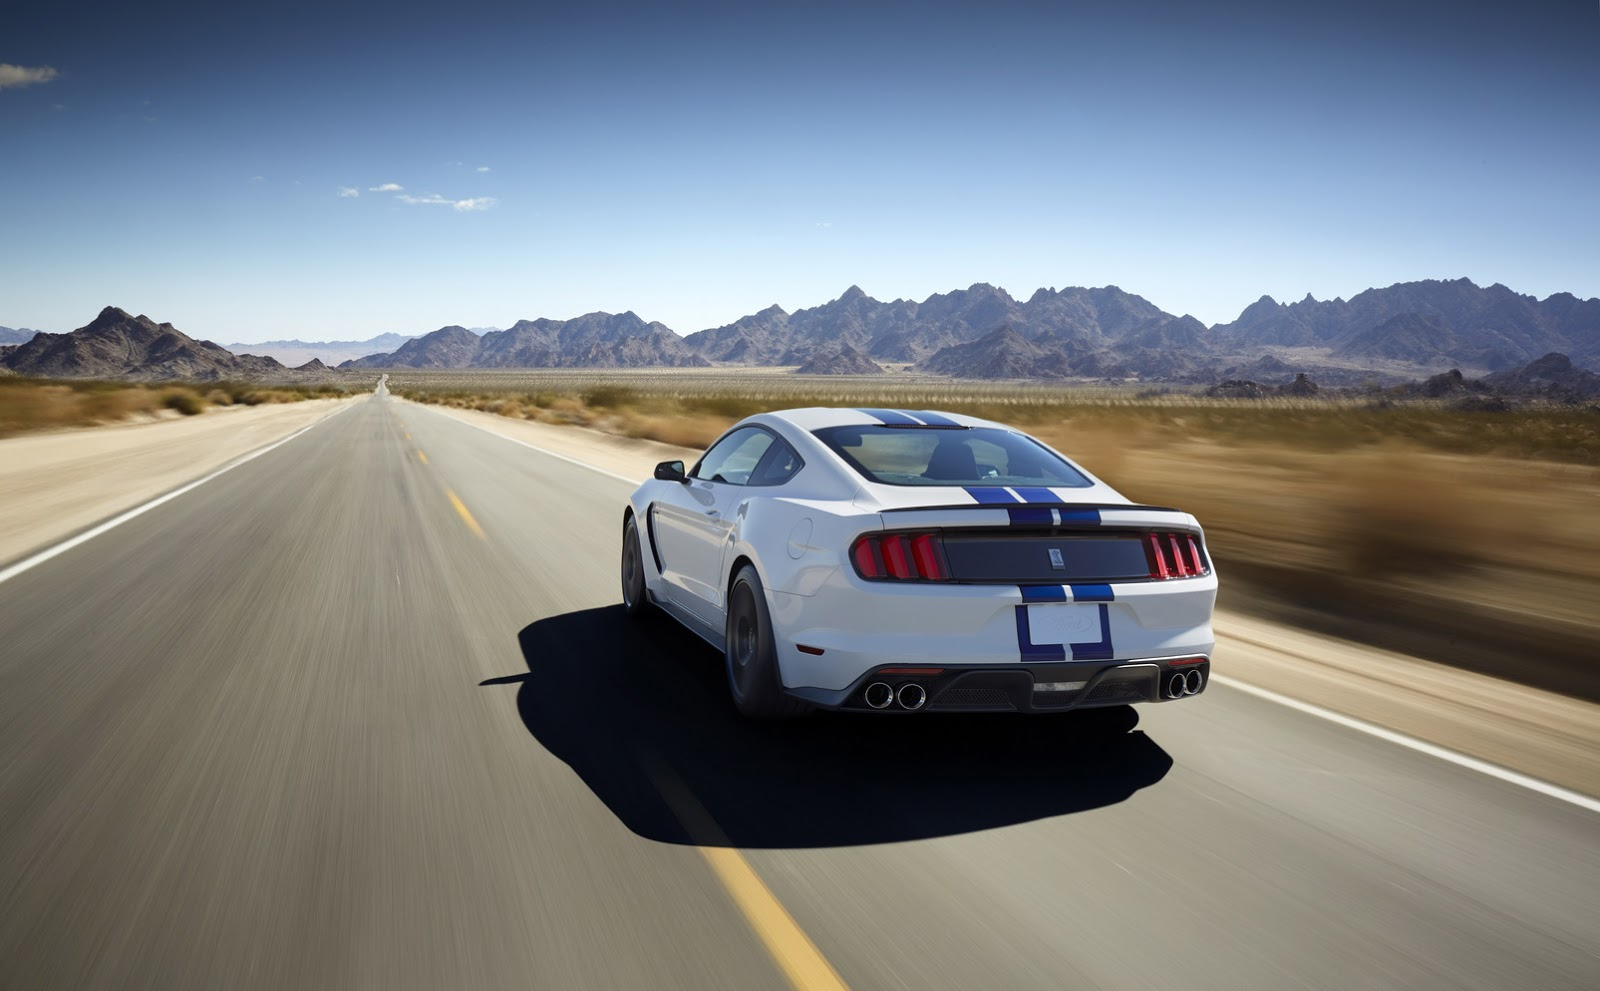 New-Ford-Mustang-Shelby-GT350-25.jpg